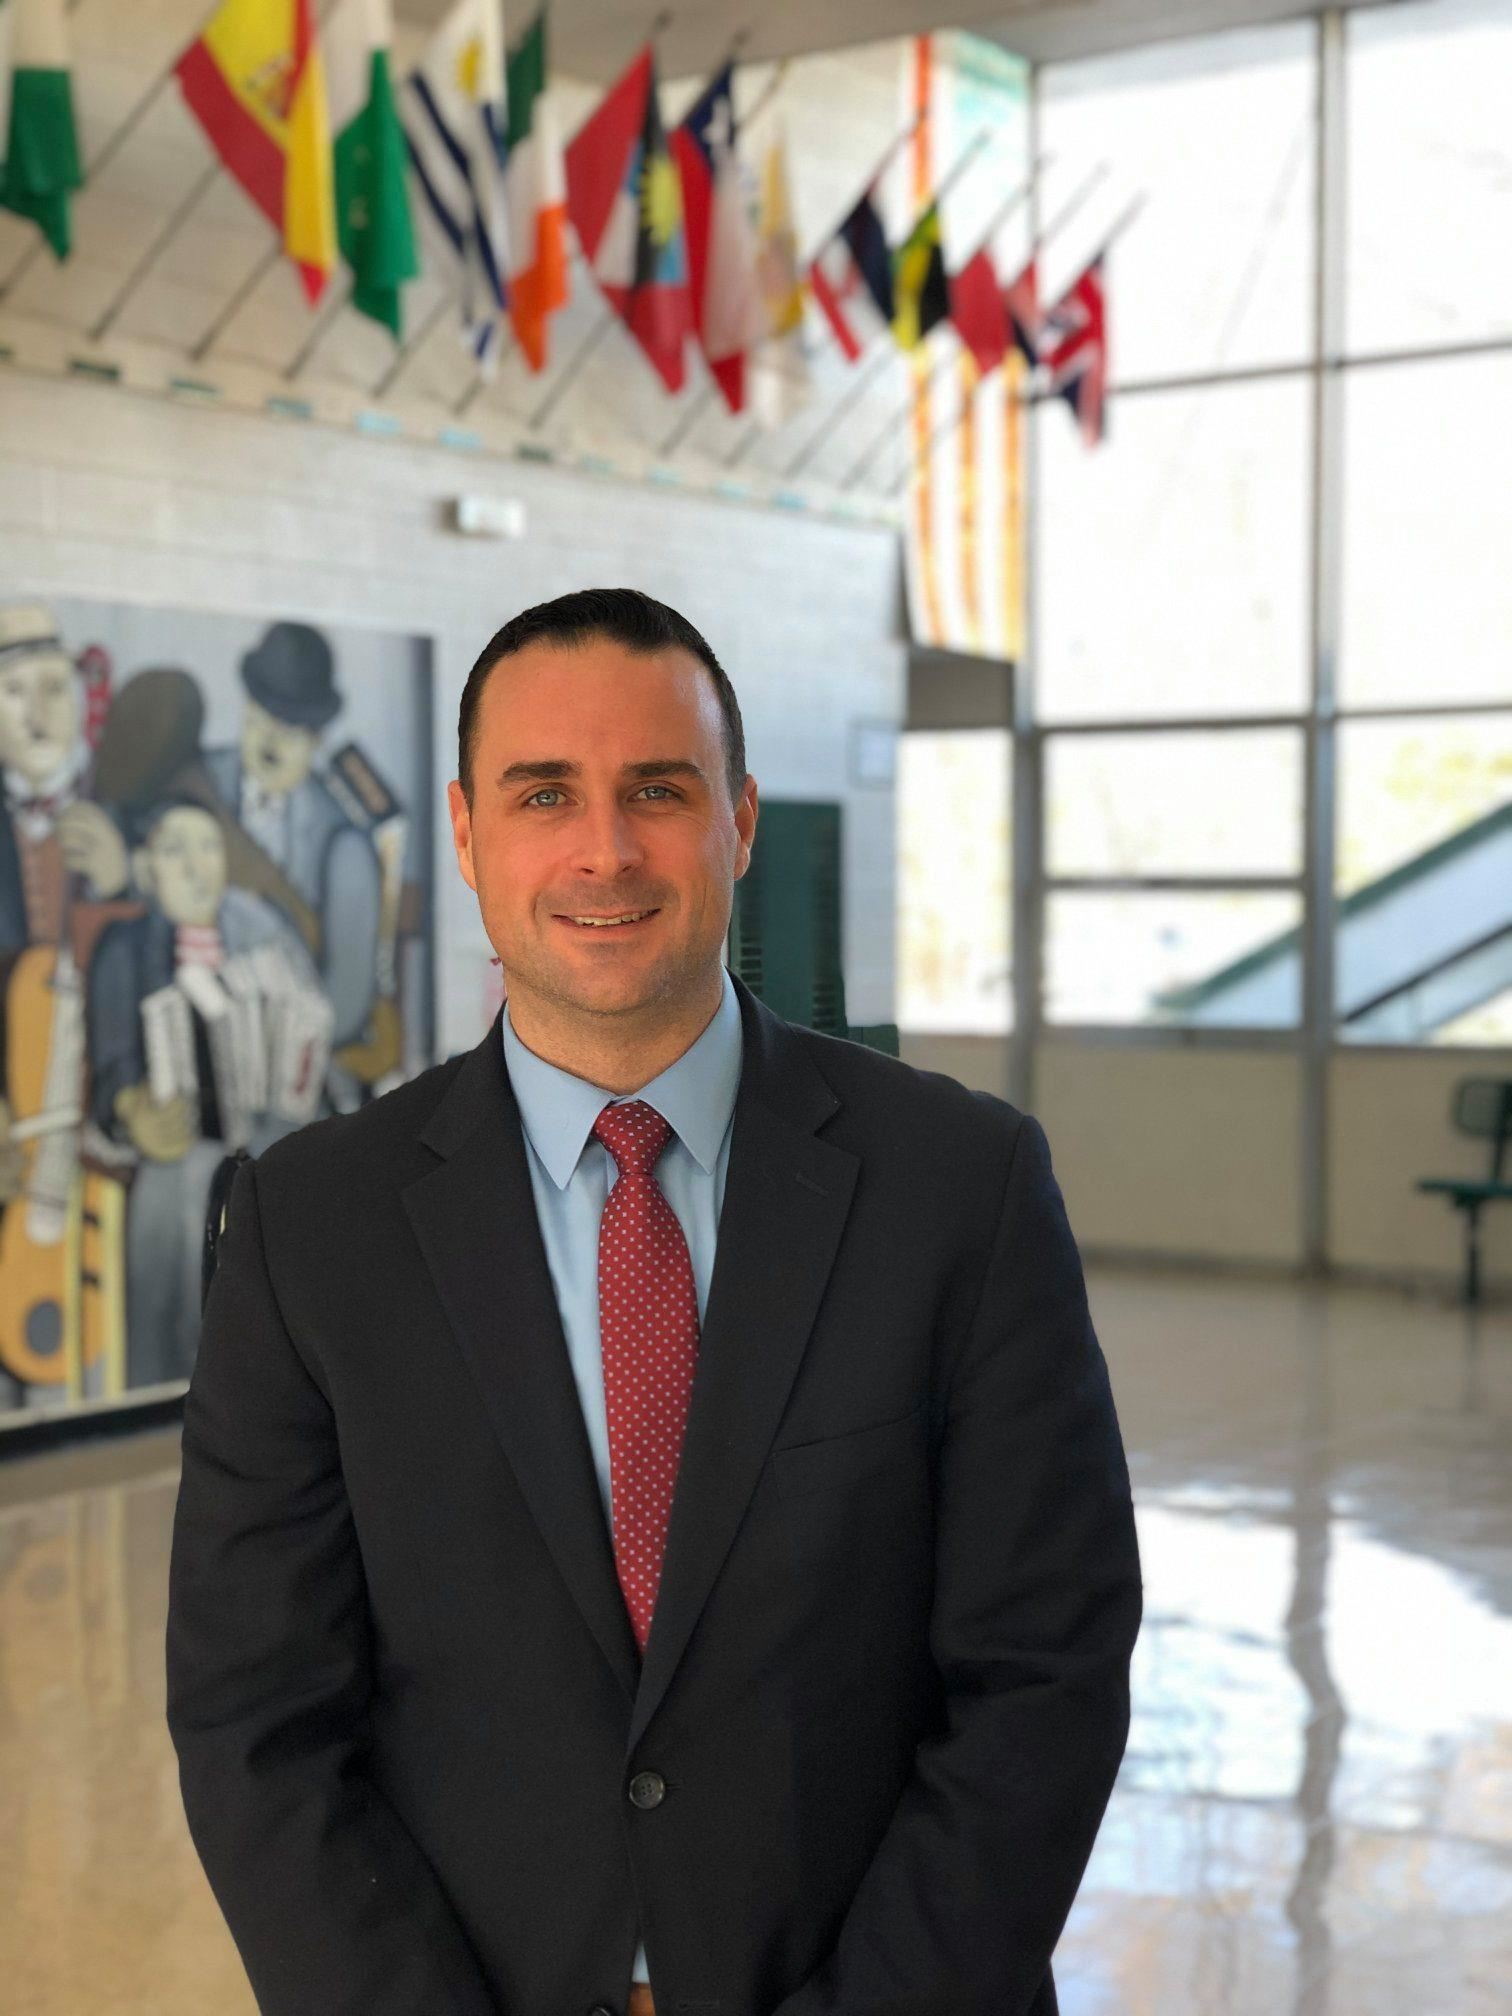 Woodlands Middle High School welcomes new Assistant Principal